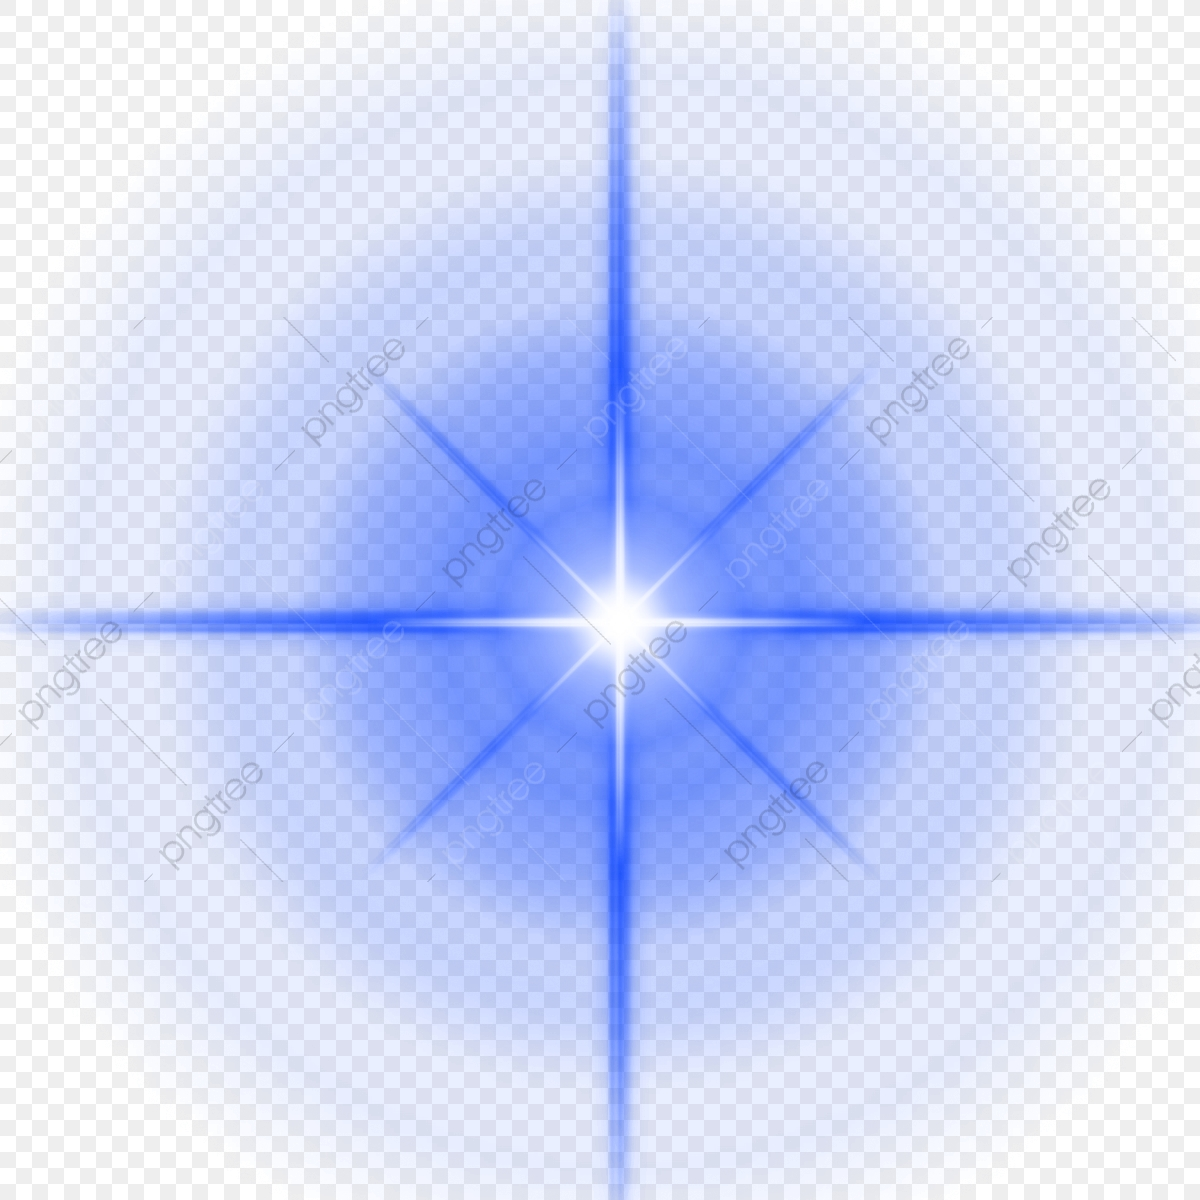 Star Light Effect Png, Star Light Effect, Star Png, Light.